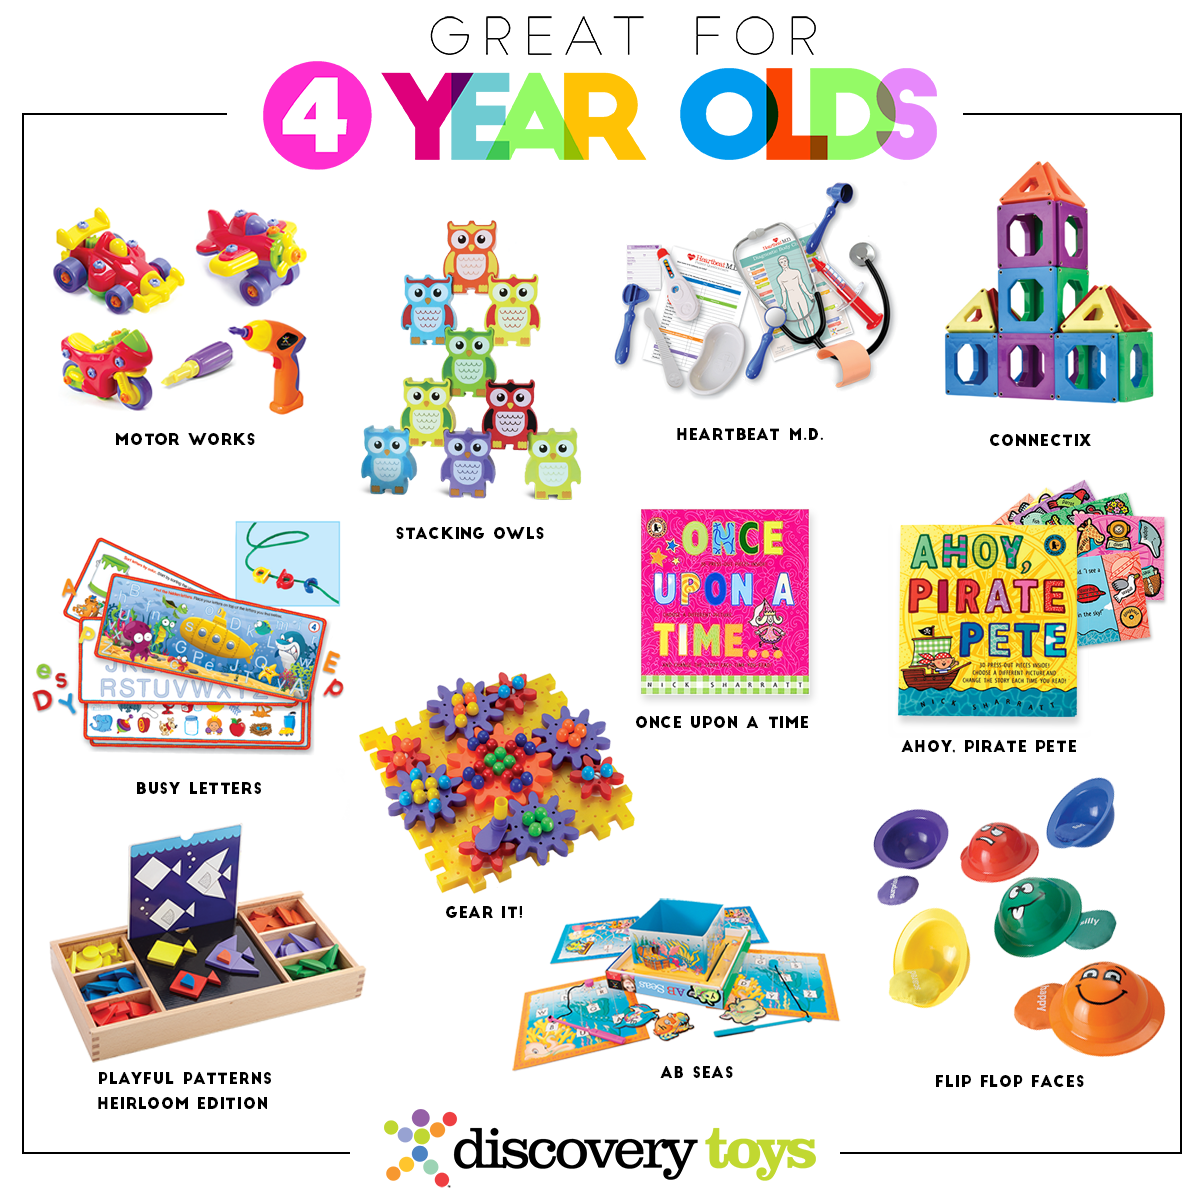 Toys For 45 Year Olds : Discovery toys top products by age